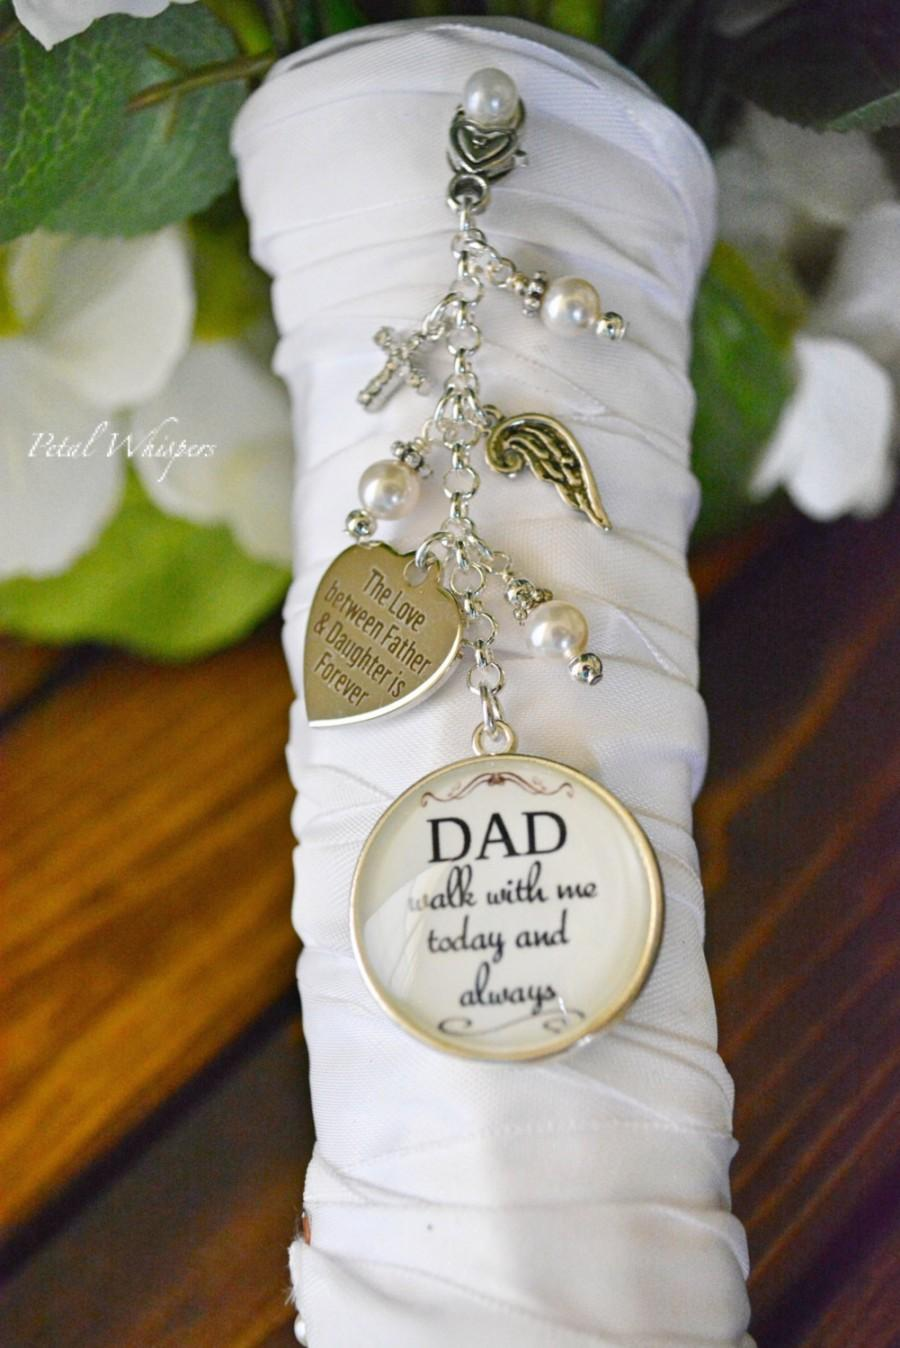 Mariage - Bridal Bouquet Charm-Wedding Bouquet Charm-Wedding Memorial-In Memory Of Dad-Bridal Gift-Gift For Bride-Walk With Me Dad